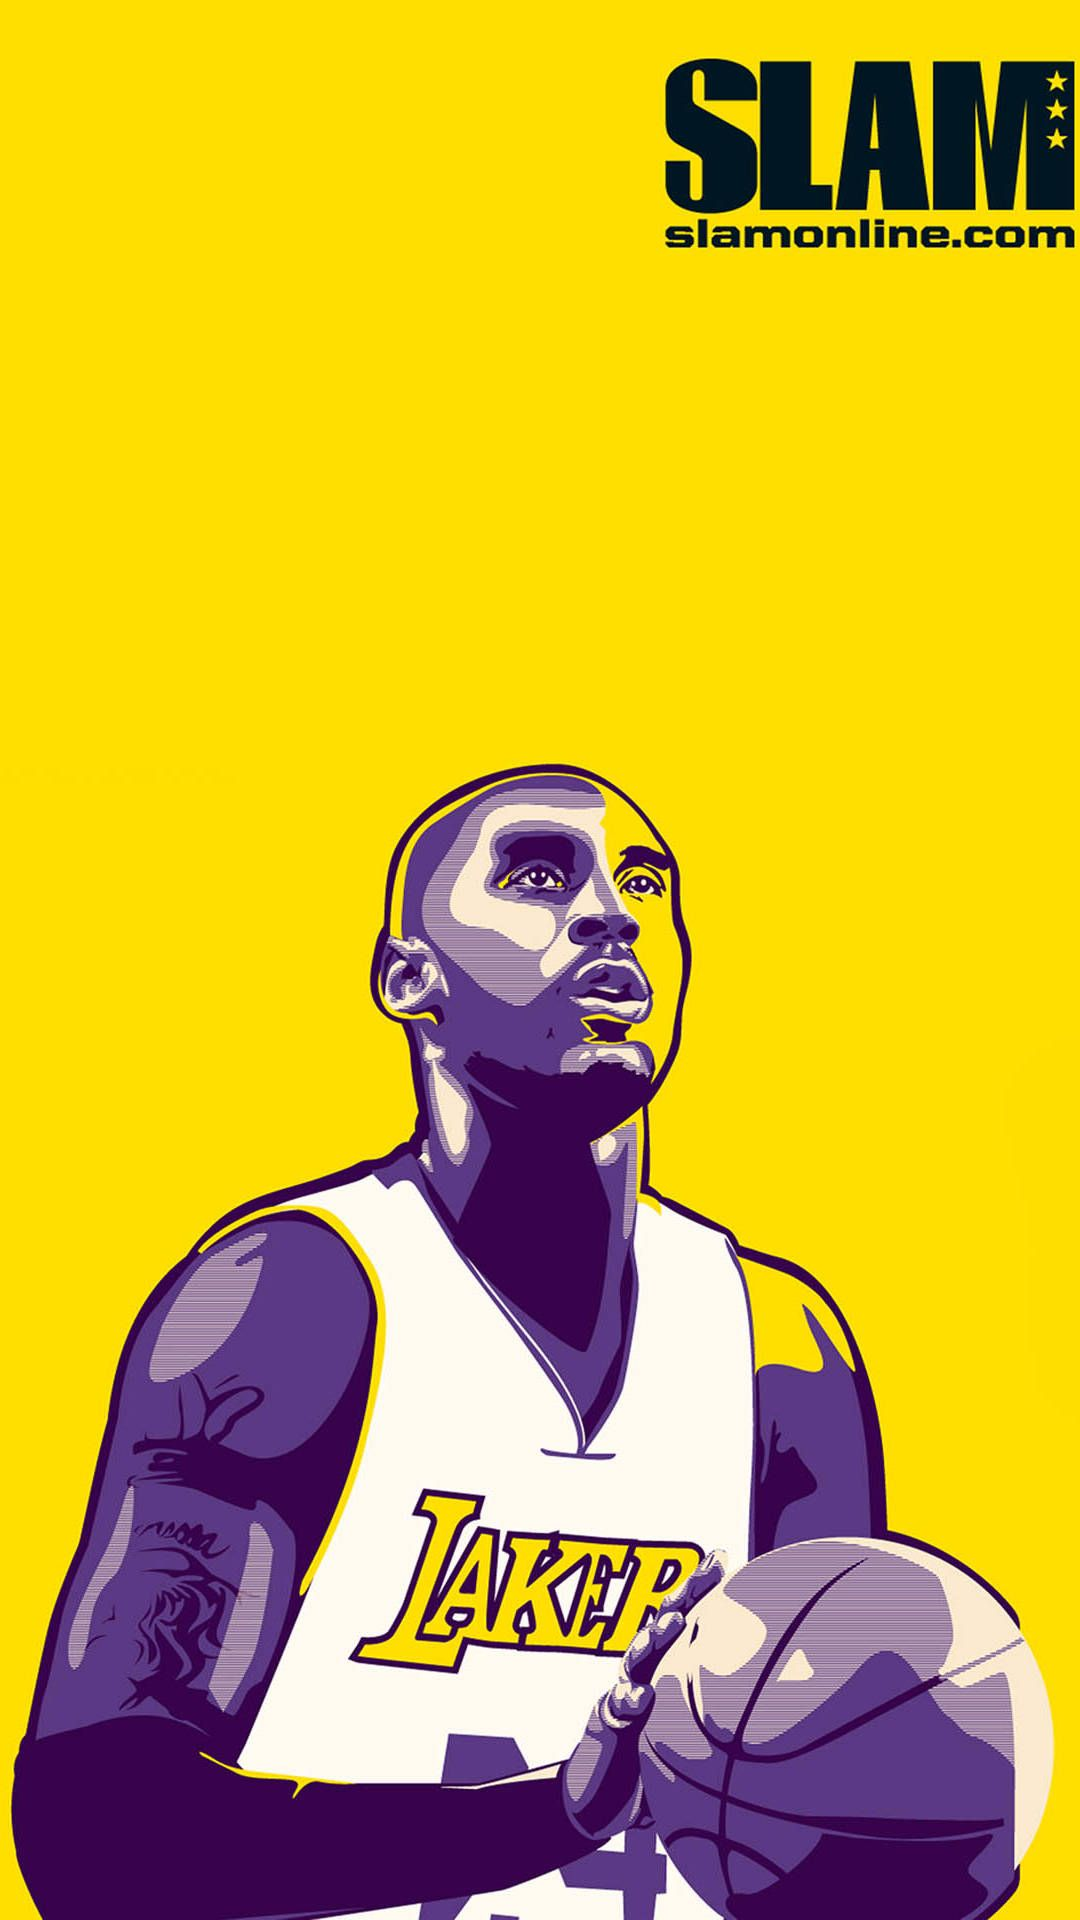 Black Mamba Kobe Bryant Iphone Background in 2020 Kobe